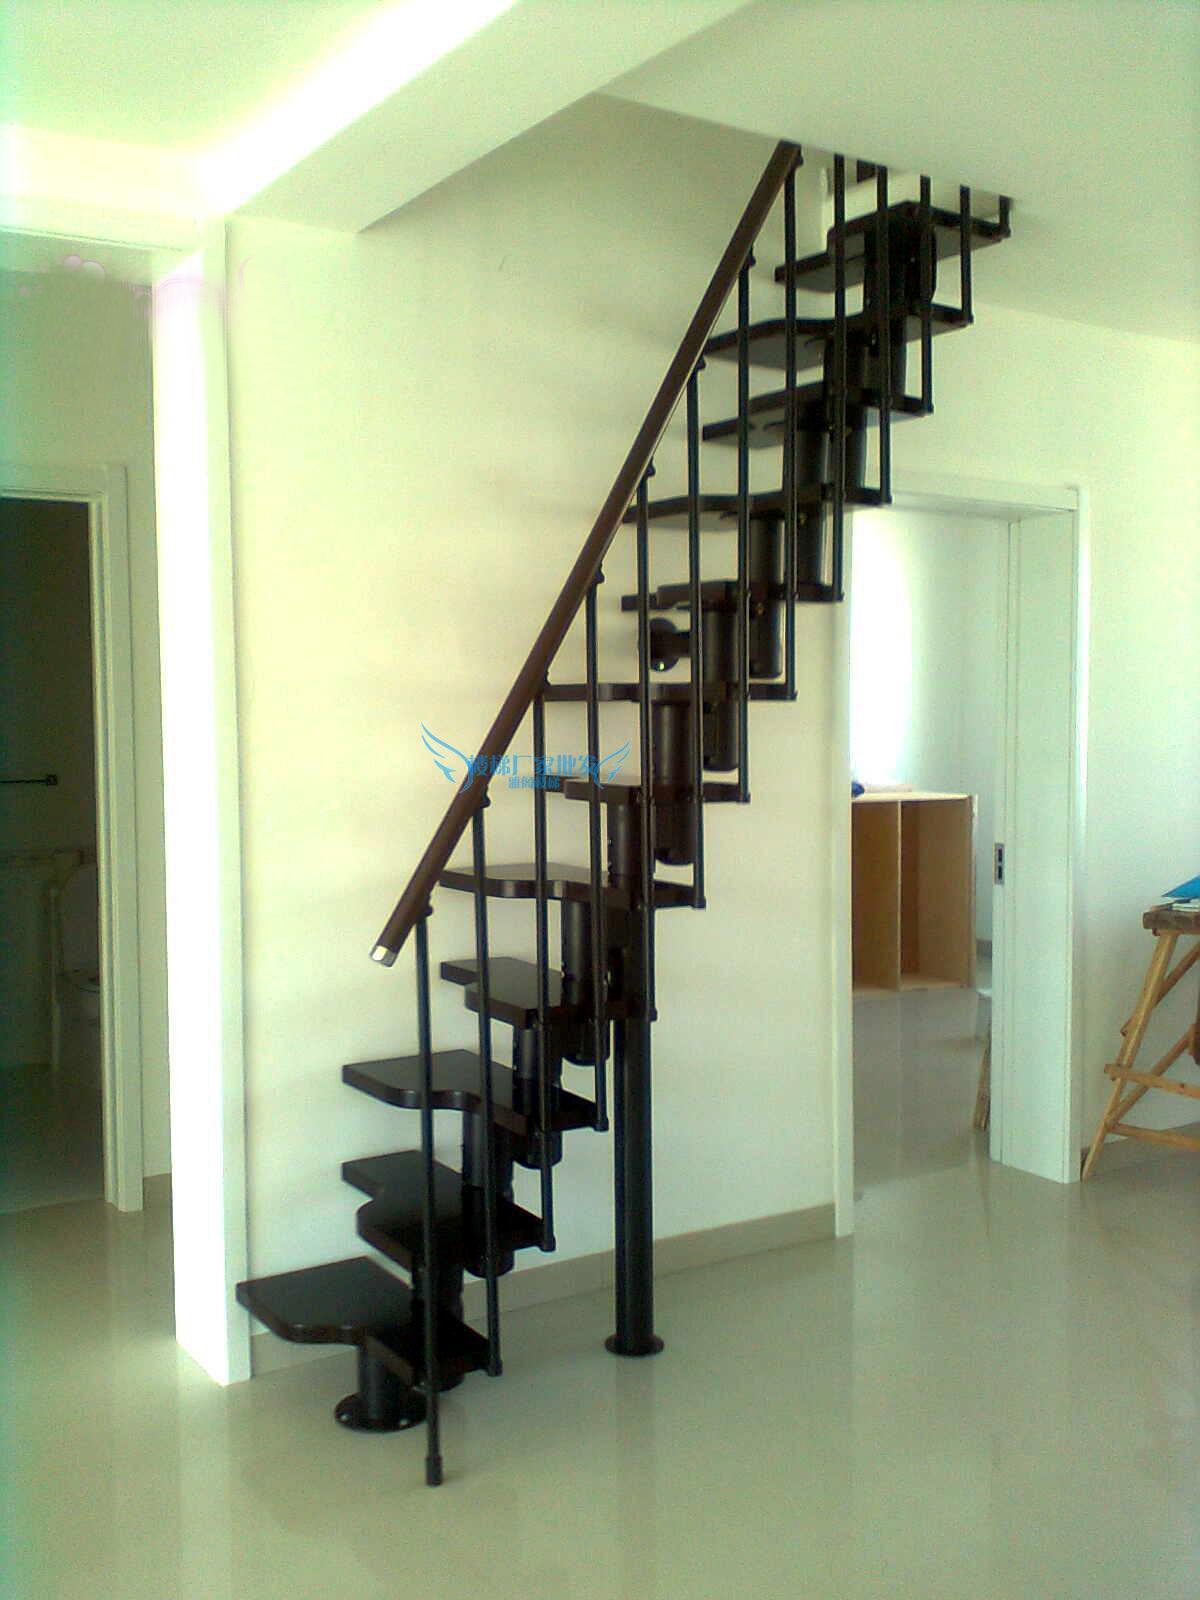 ... Staircases For Small Spaces Straight. Zoom · Lightbox Moreview ·  Lightbox Moreview ...